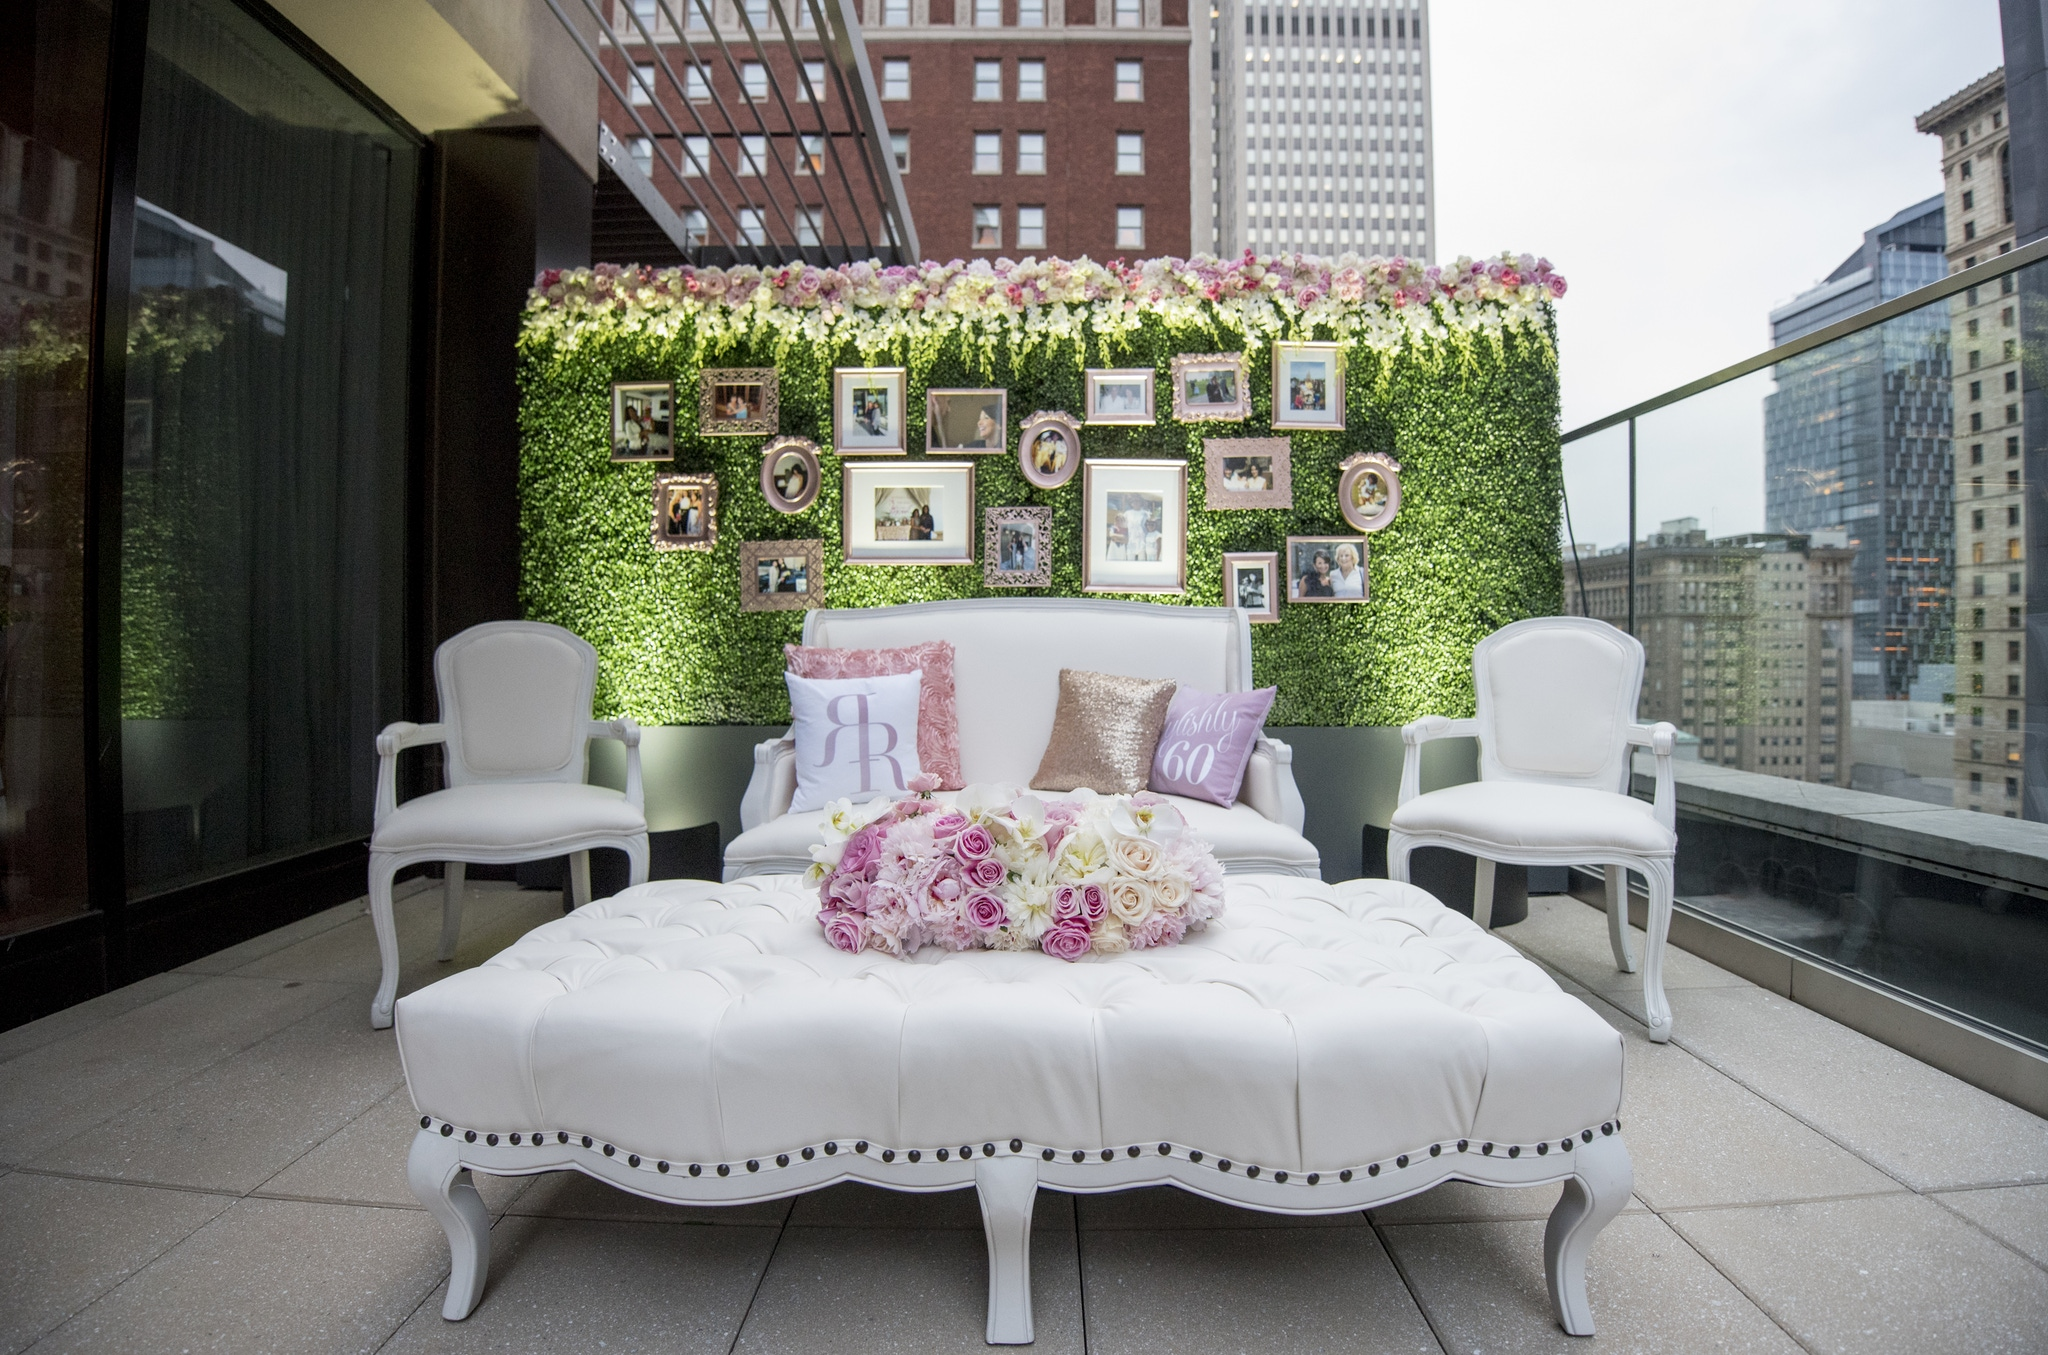 Terrace with a floral theme and ivy wall